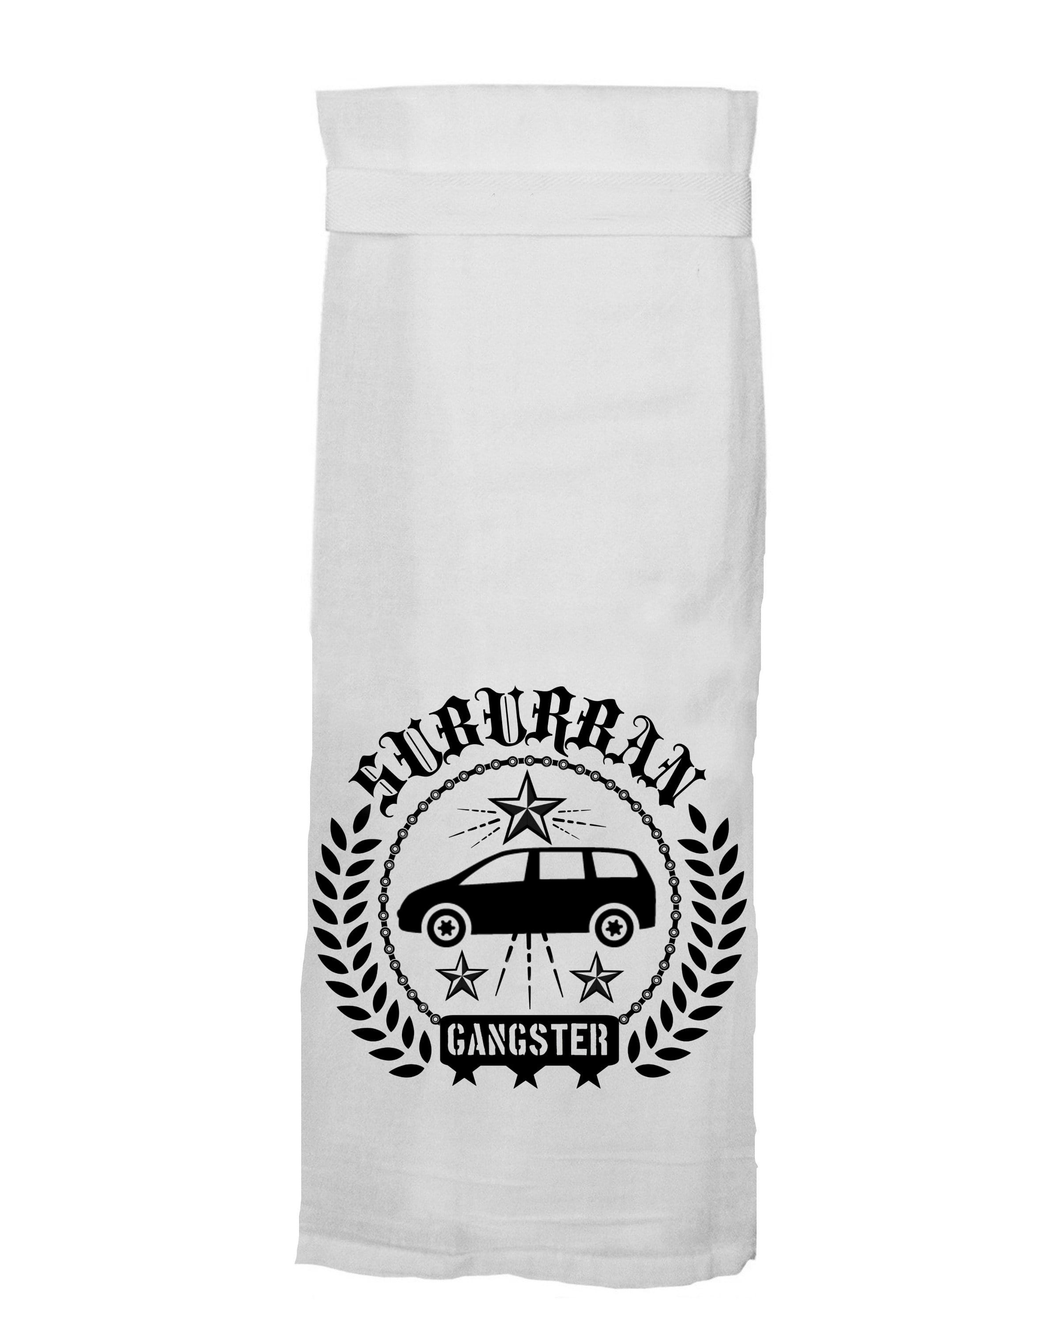 Suburban Gangster HANG TIGHT TOWEL®